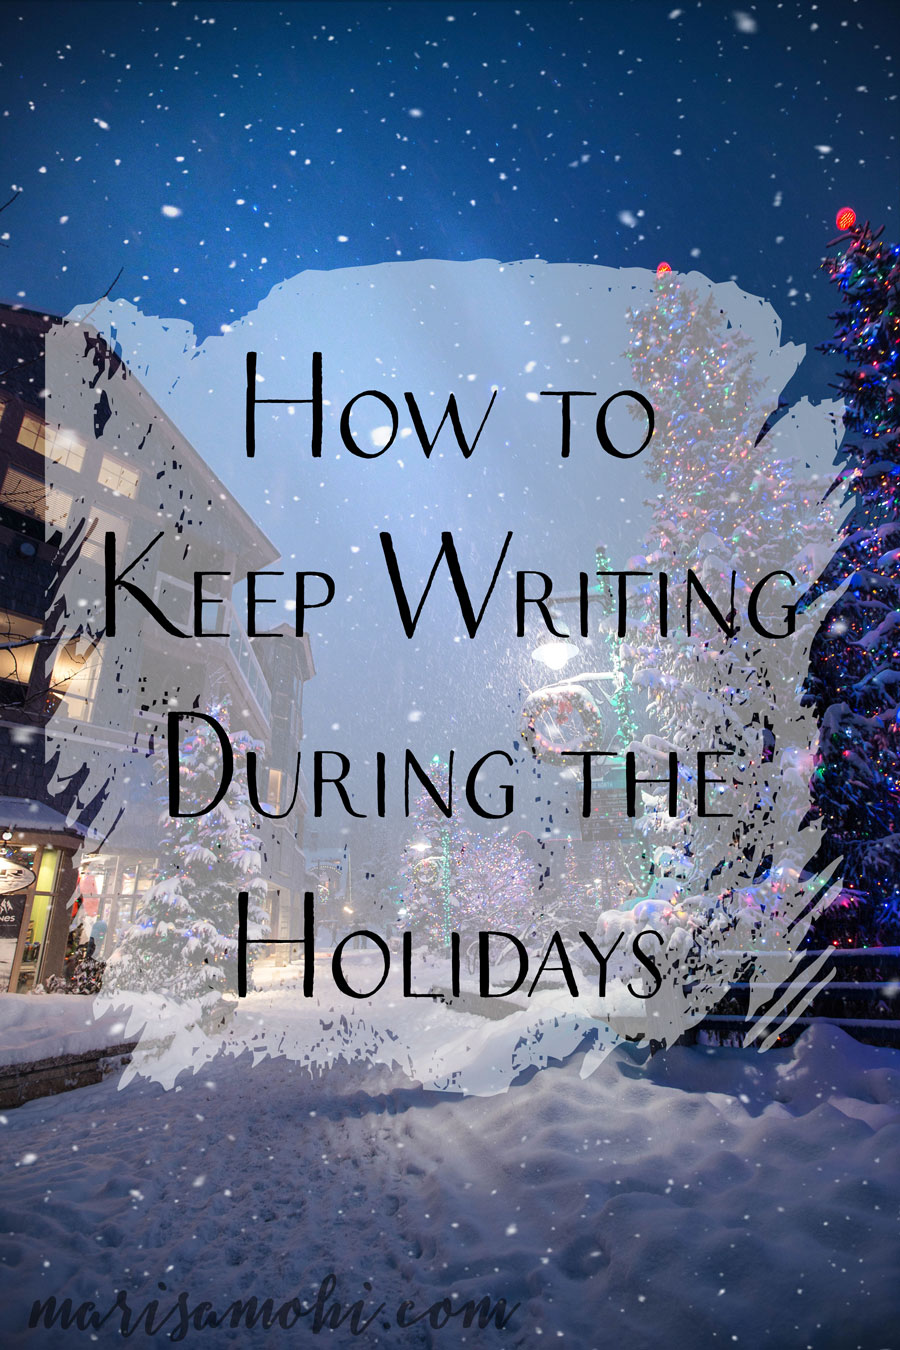 How to Keep Writing During the Holidays | Looking for ways to keep your writing routine during the hustle and bustle of Christmas? Here's how to keep writing during the holidays.